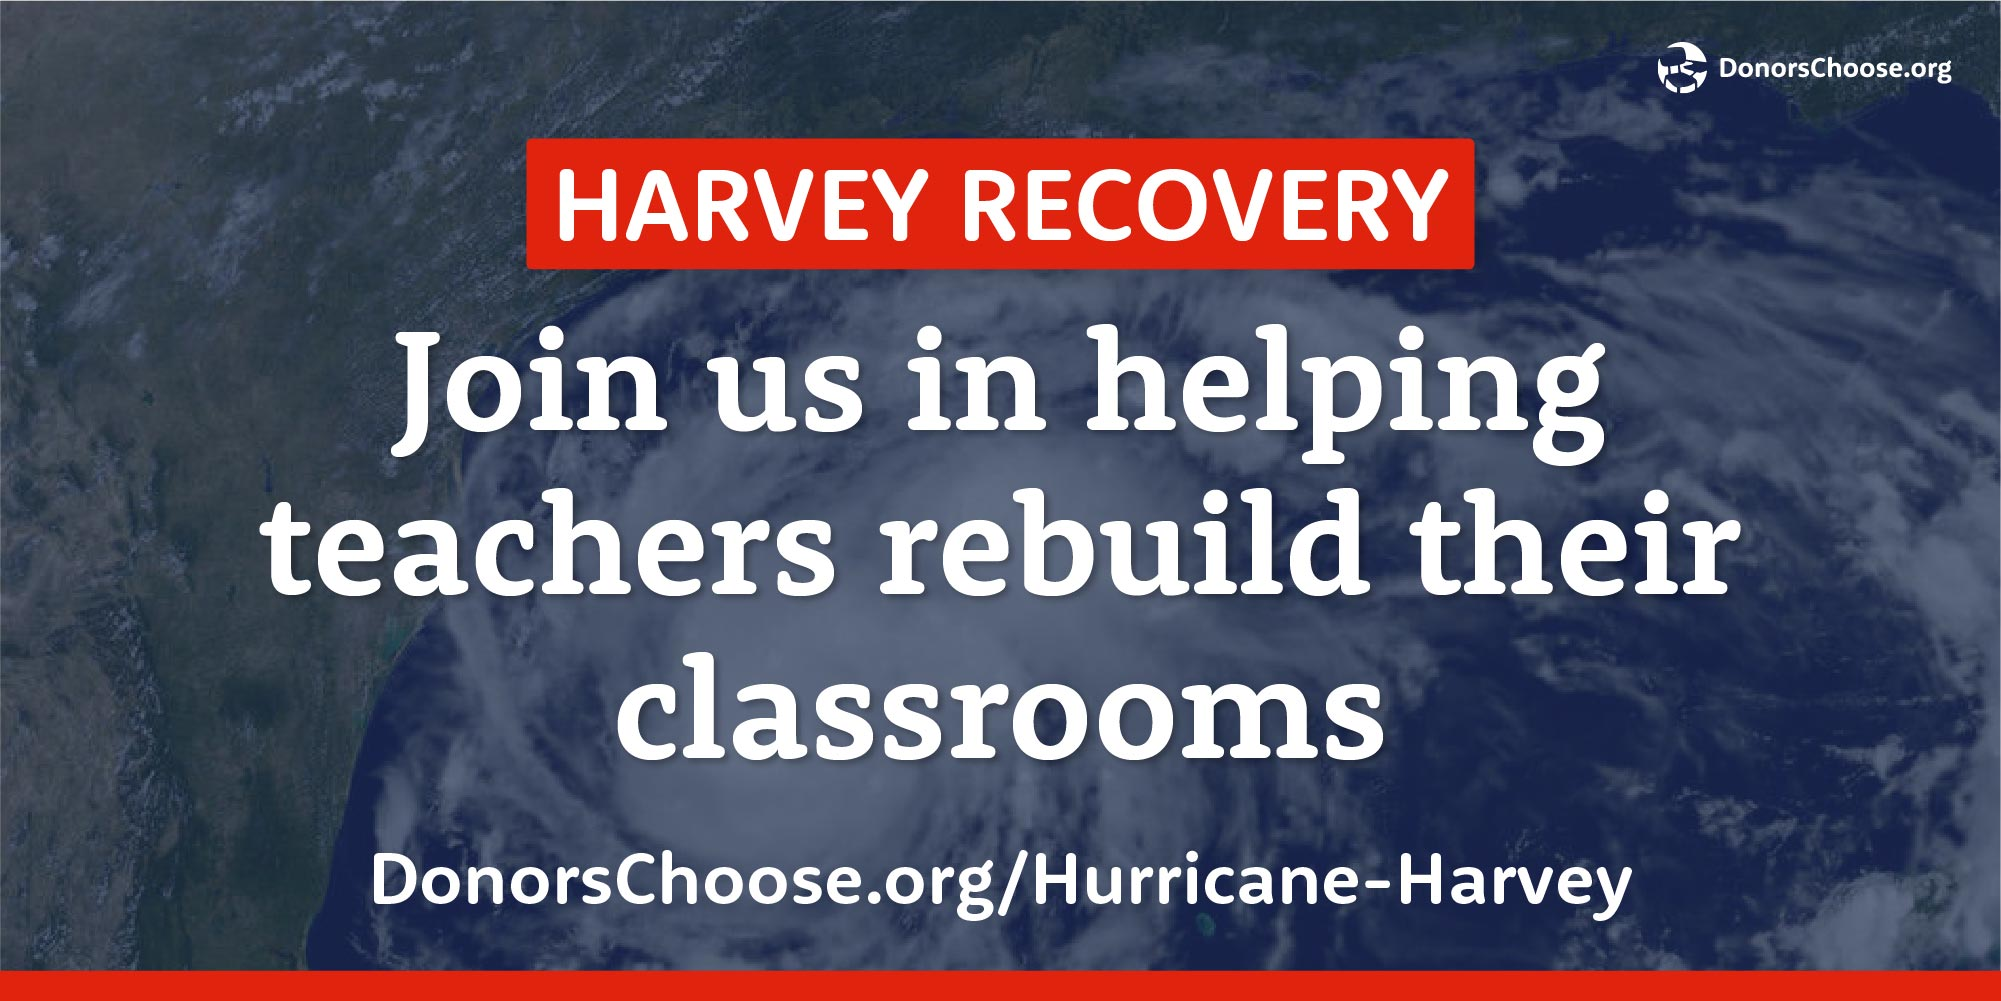 You can help teachers in Texas and Louisiana get the supplies they'll need to rebuild classrooms damaged by #Harvey: https://t.co/C1dKd2cfmE https://t.co/8jxVkRbkq1